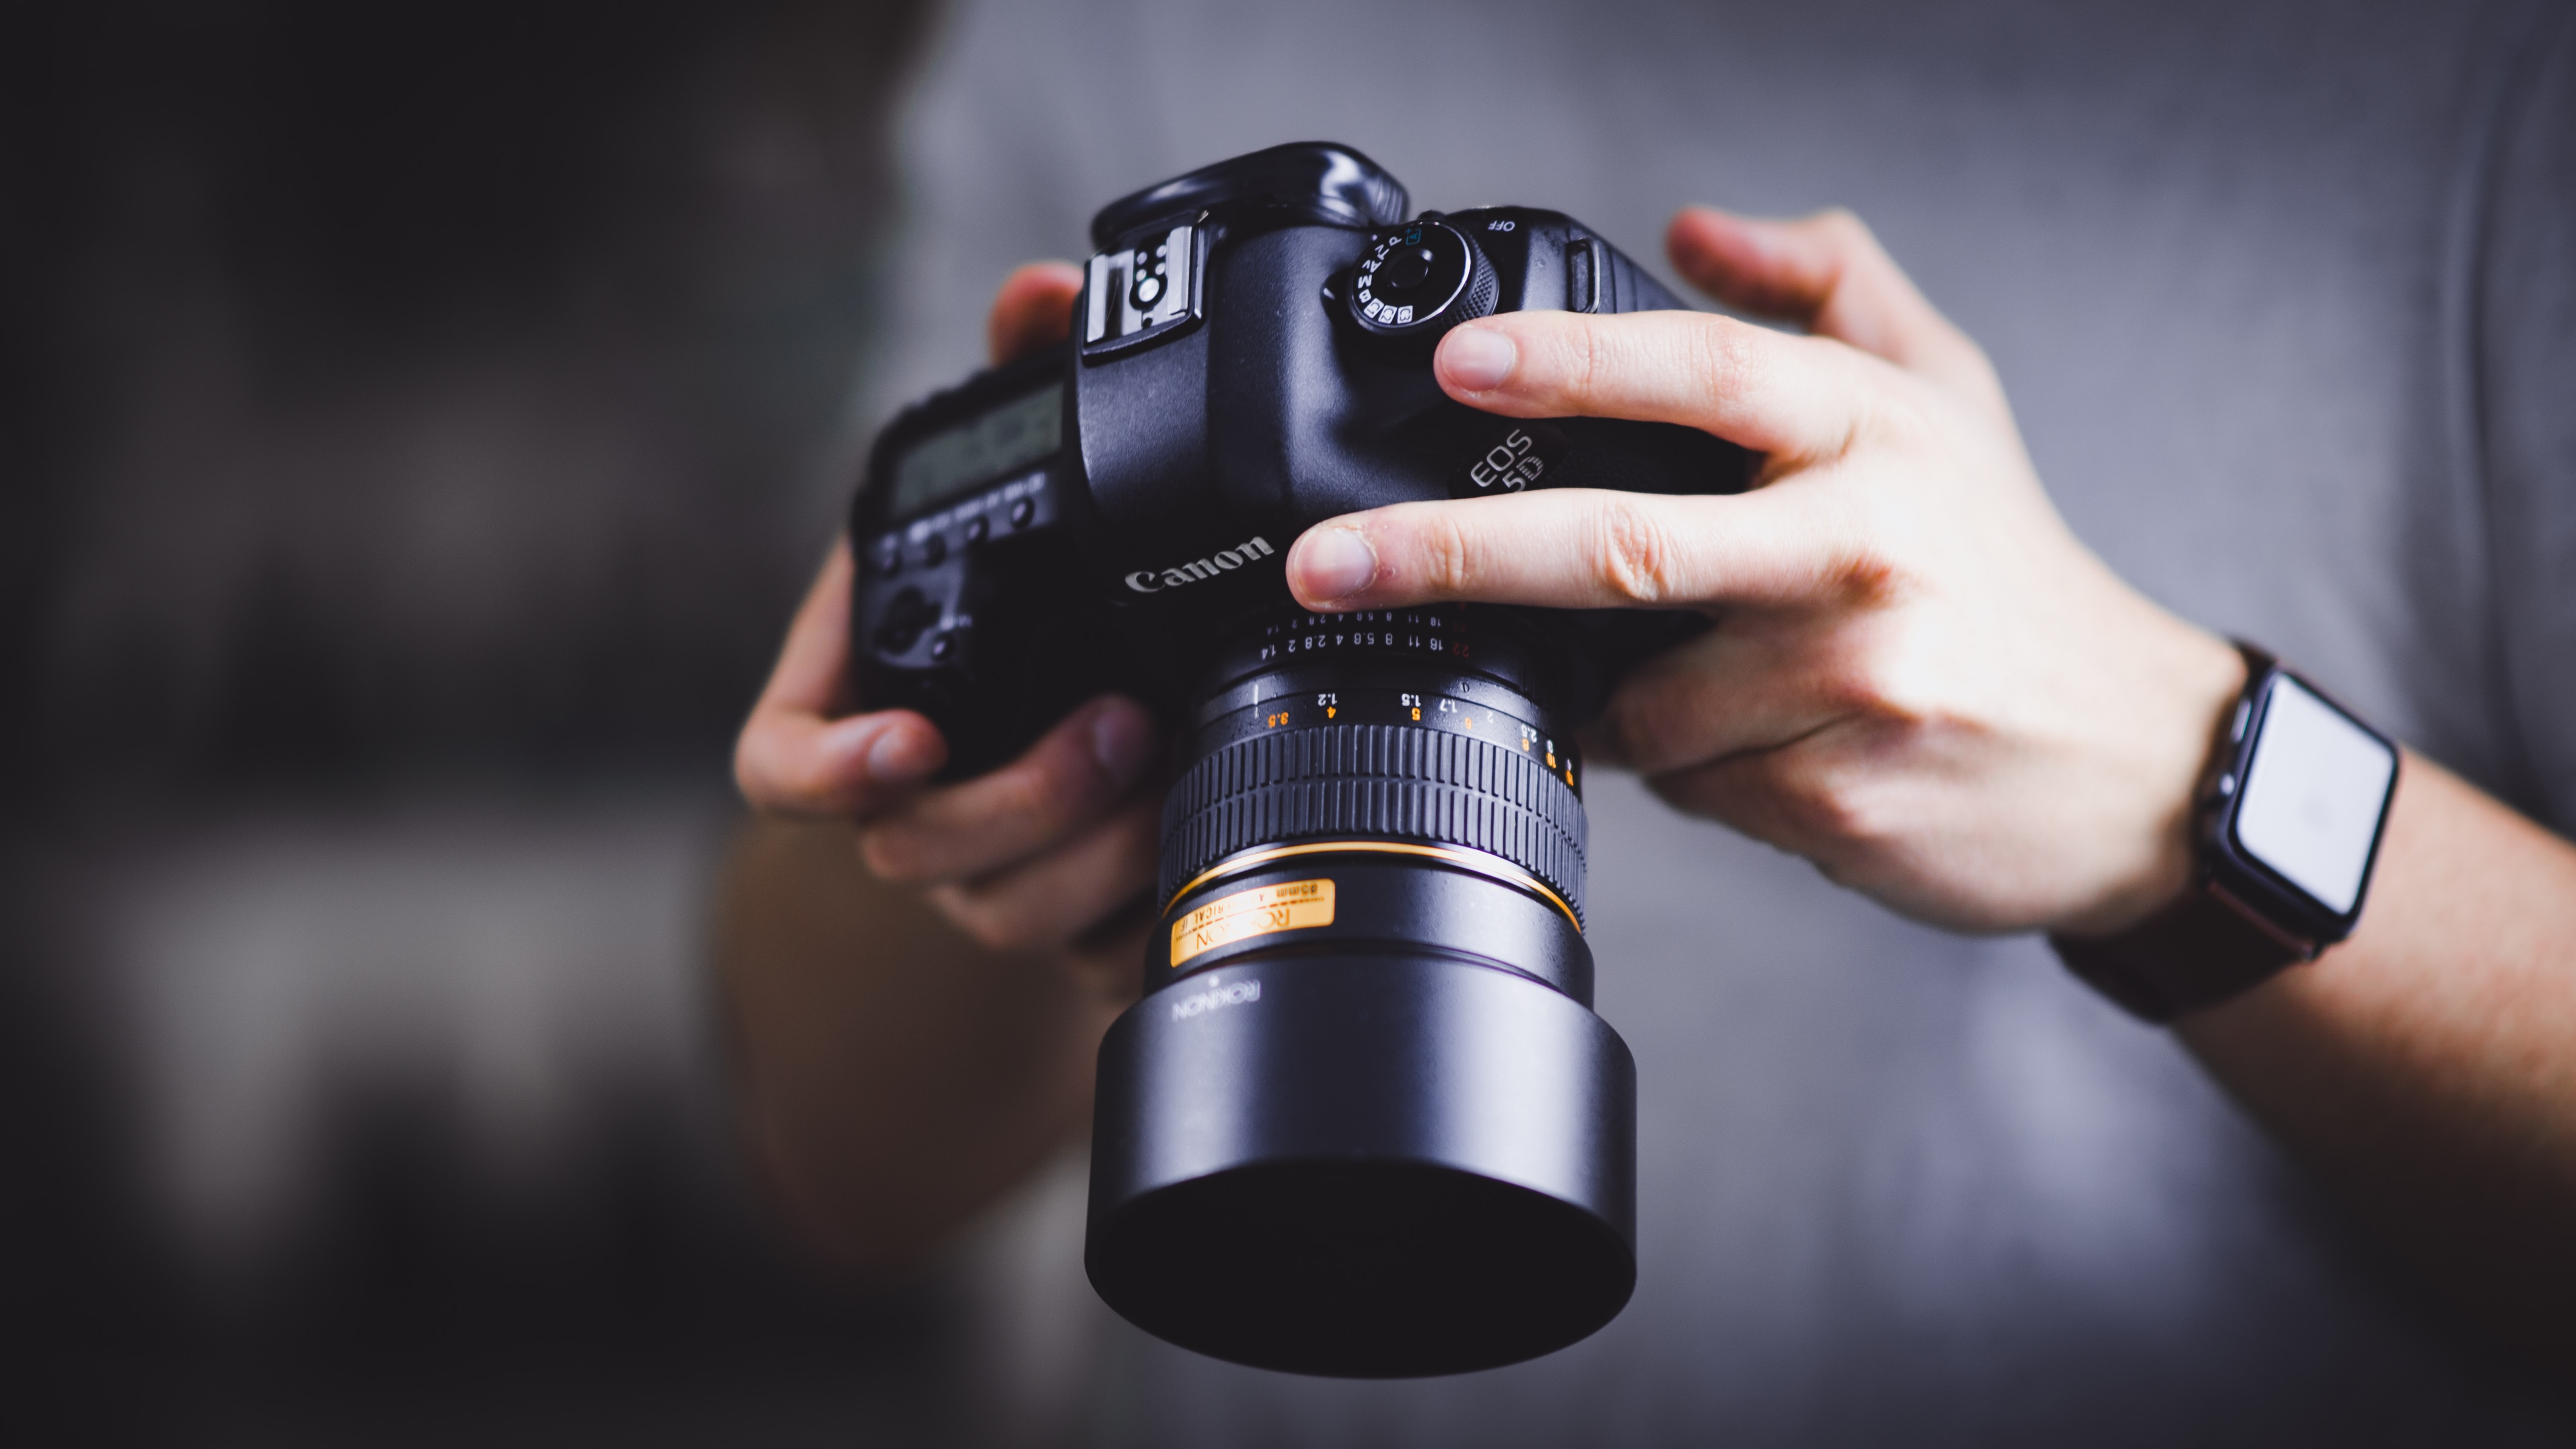 BA (Hons) Degree in Photography (Top-up)Awarded by the University of Surrey